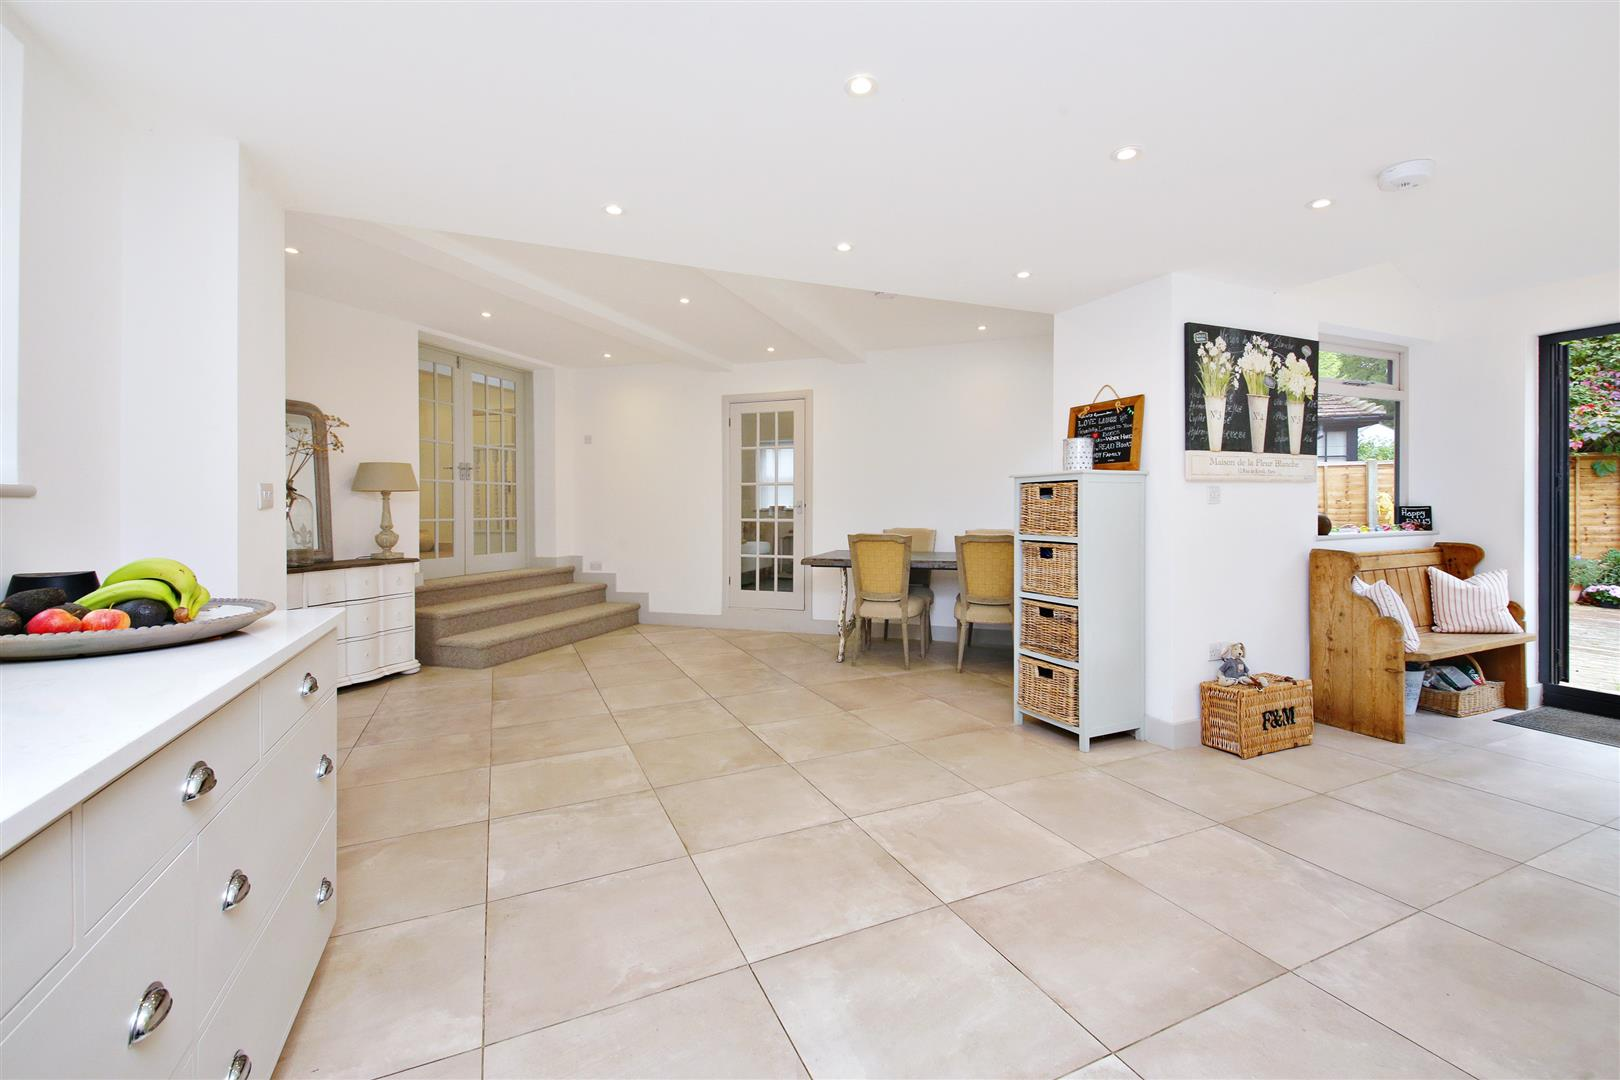 5 bed to rent in Letchmore Heath - (Property Image 6)